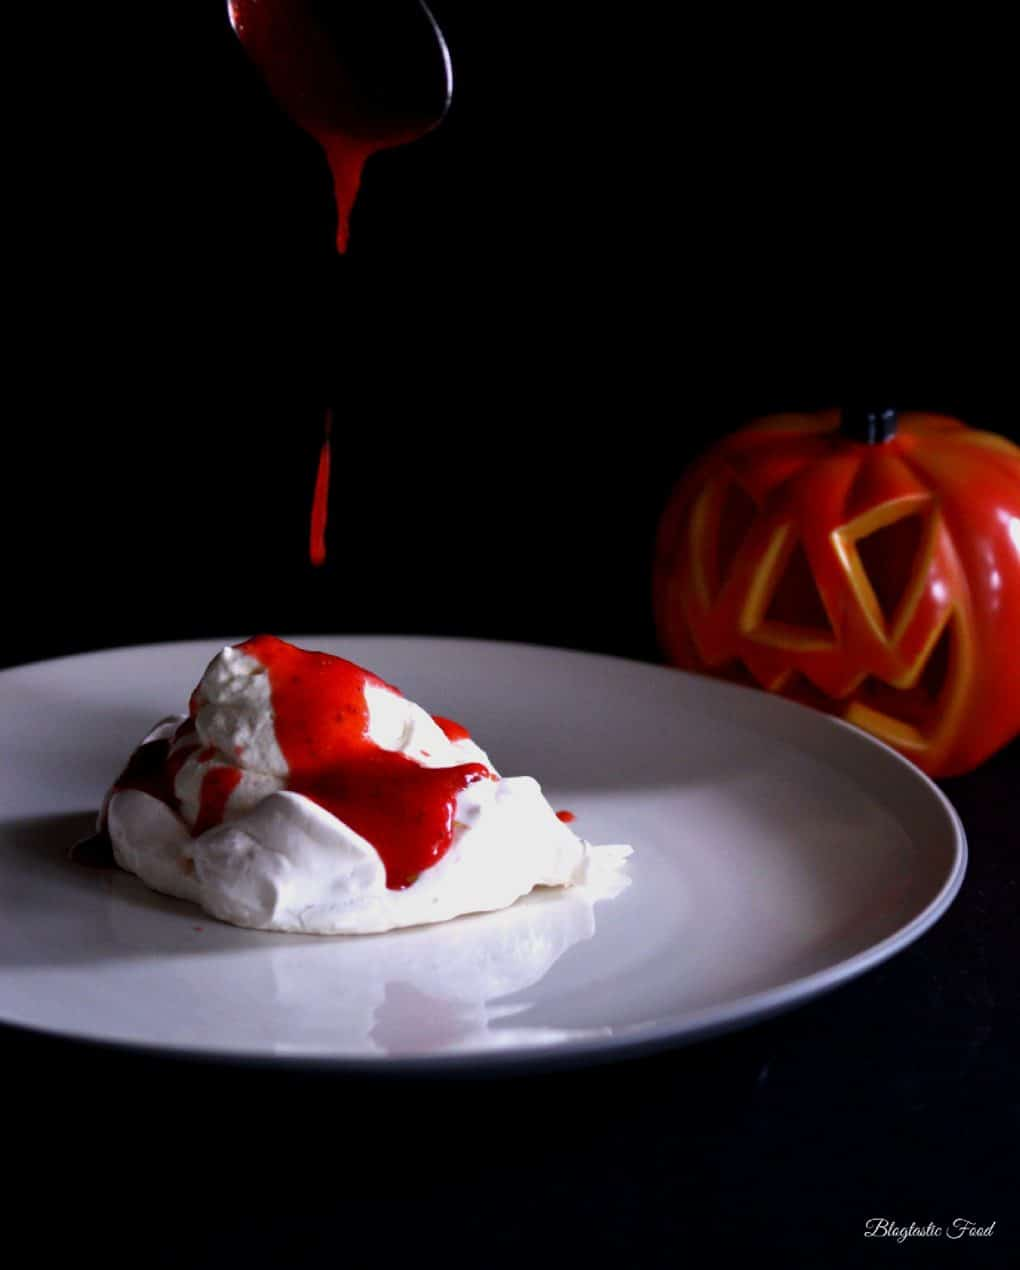 A photo of strawberry coulis being spooned over meringue on a plate.